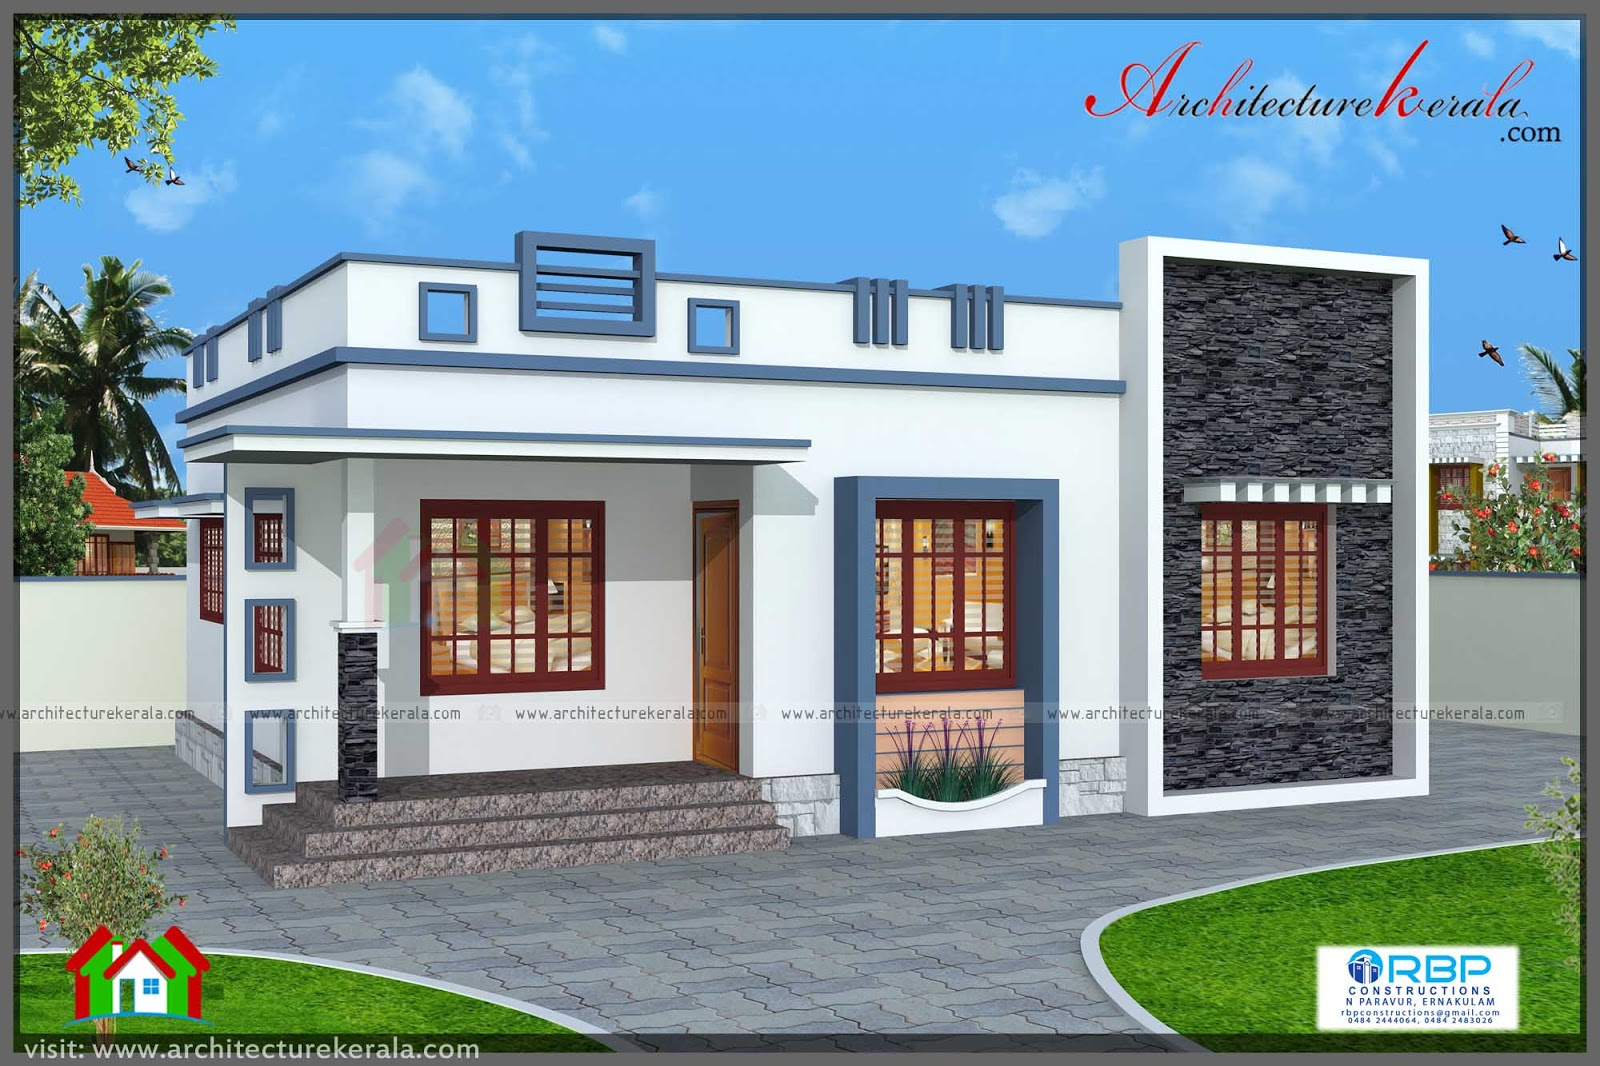 760 square feet 3 bedroom house plan architecture kerala for Small three bedroom house